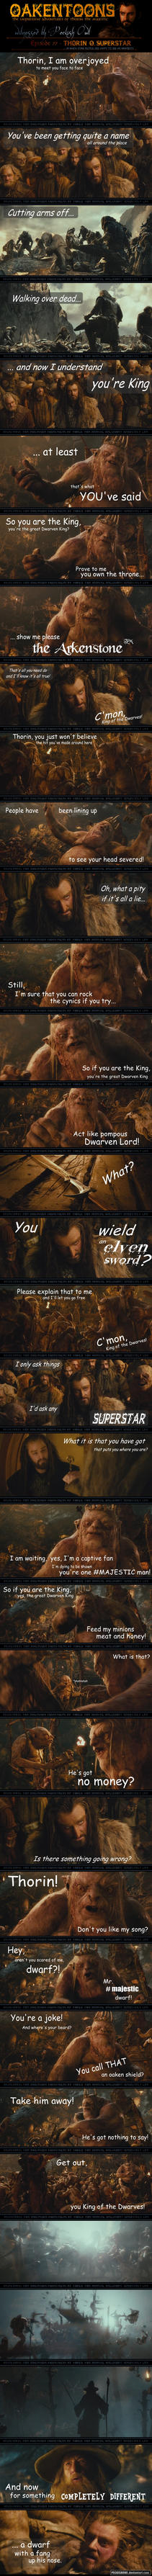 Oakentoon #77: Thorin O. Superstar by PeckishOwl